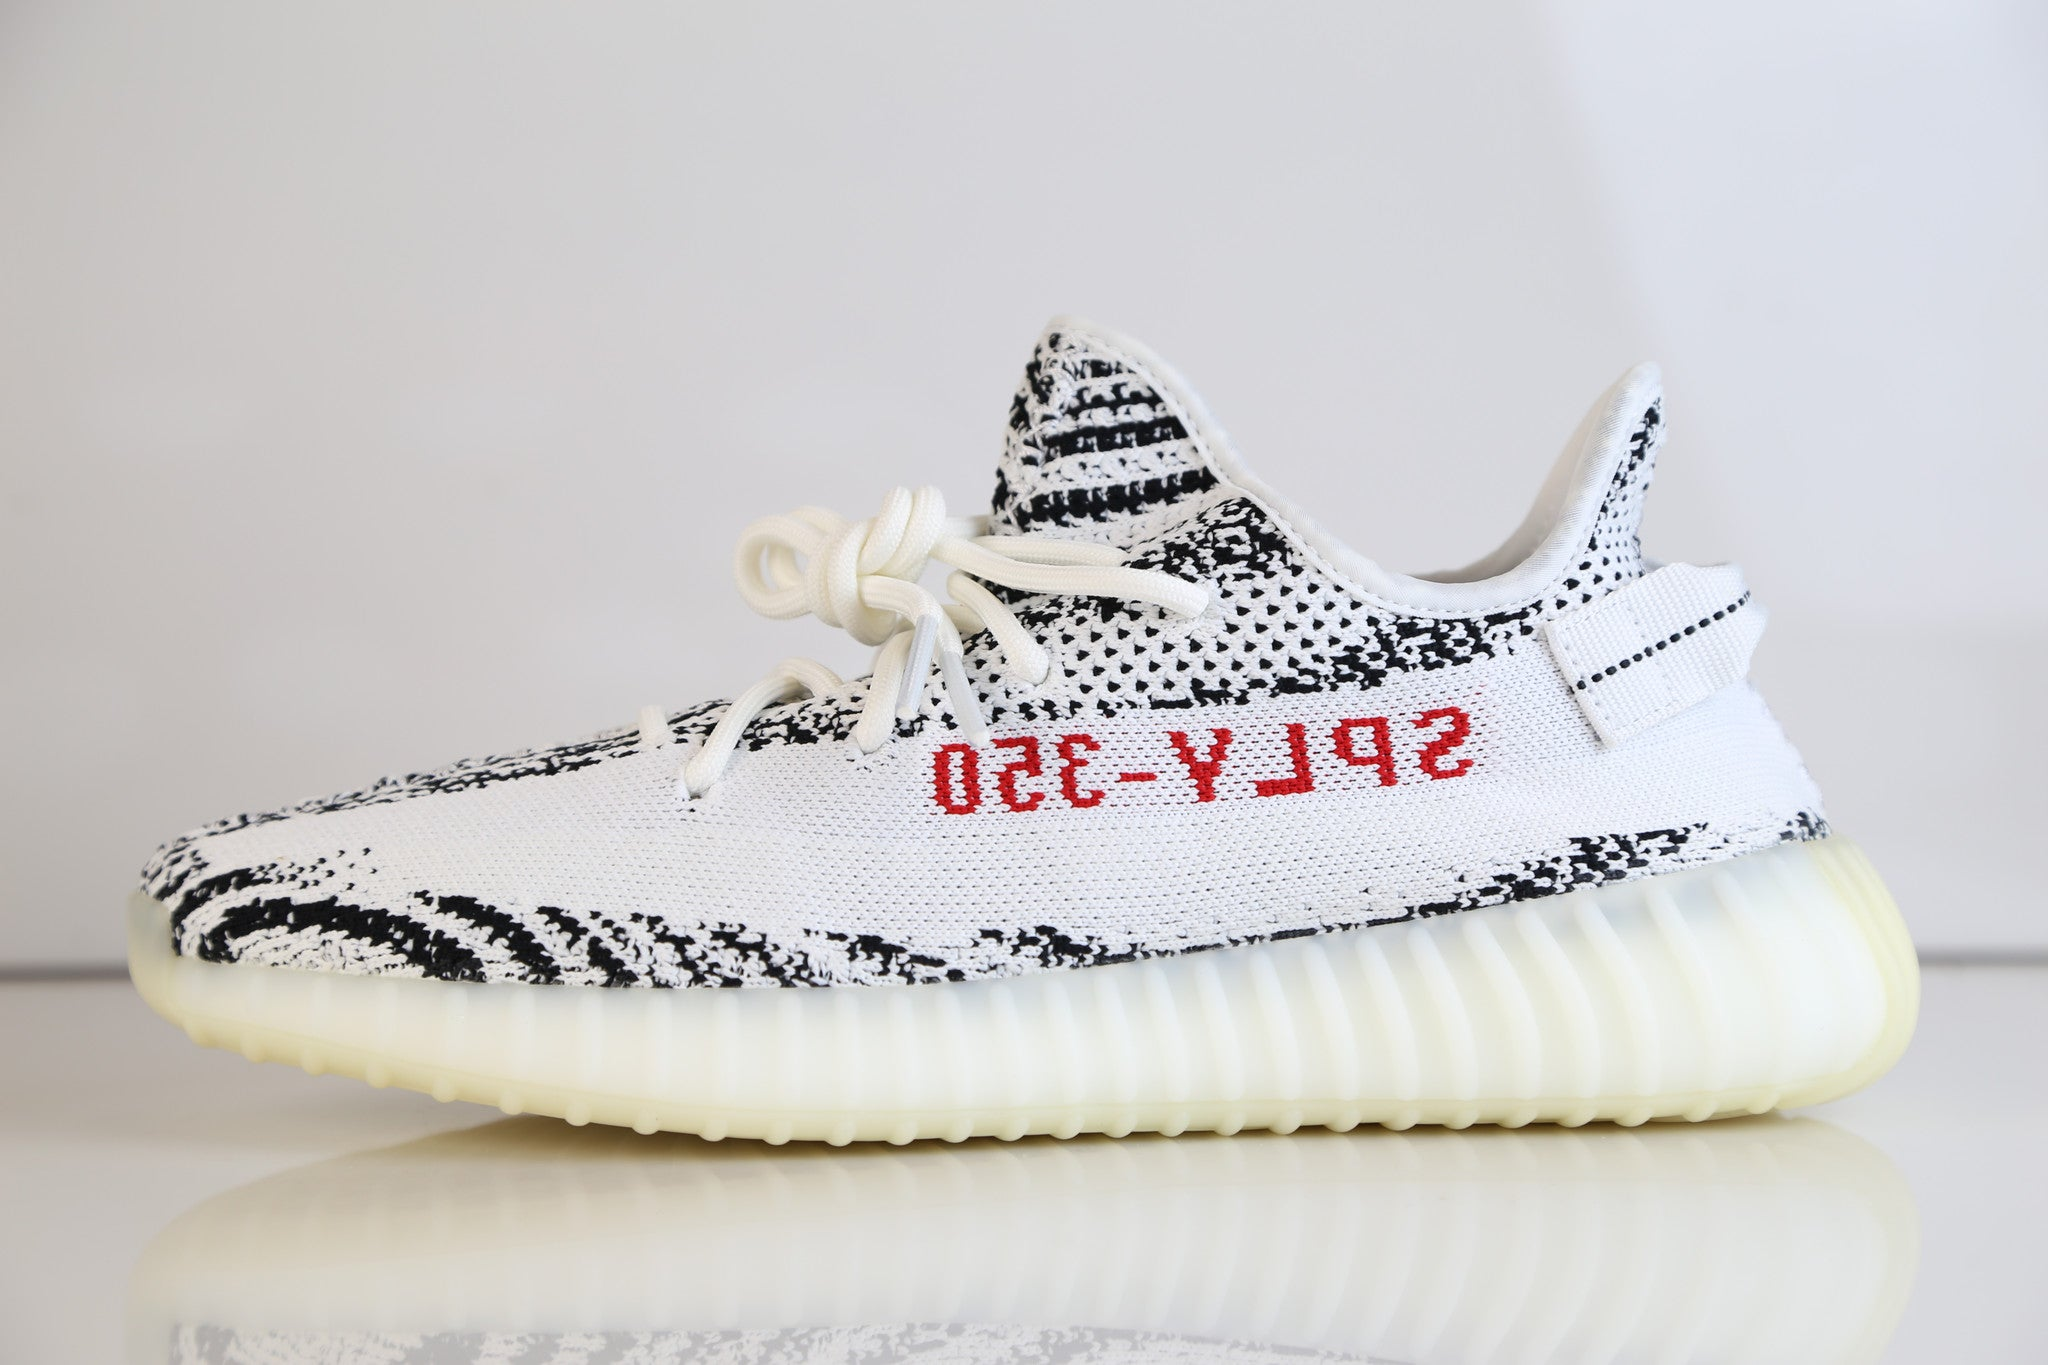 9c09993e2d802 Adidas Yeezy By Kanye West 350 V2 Zebra White Grey Red 2018 - PRE ORDE